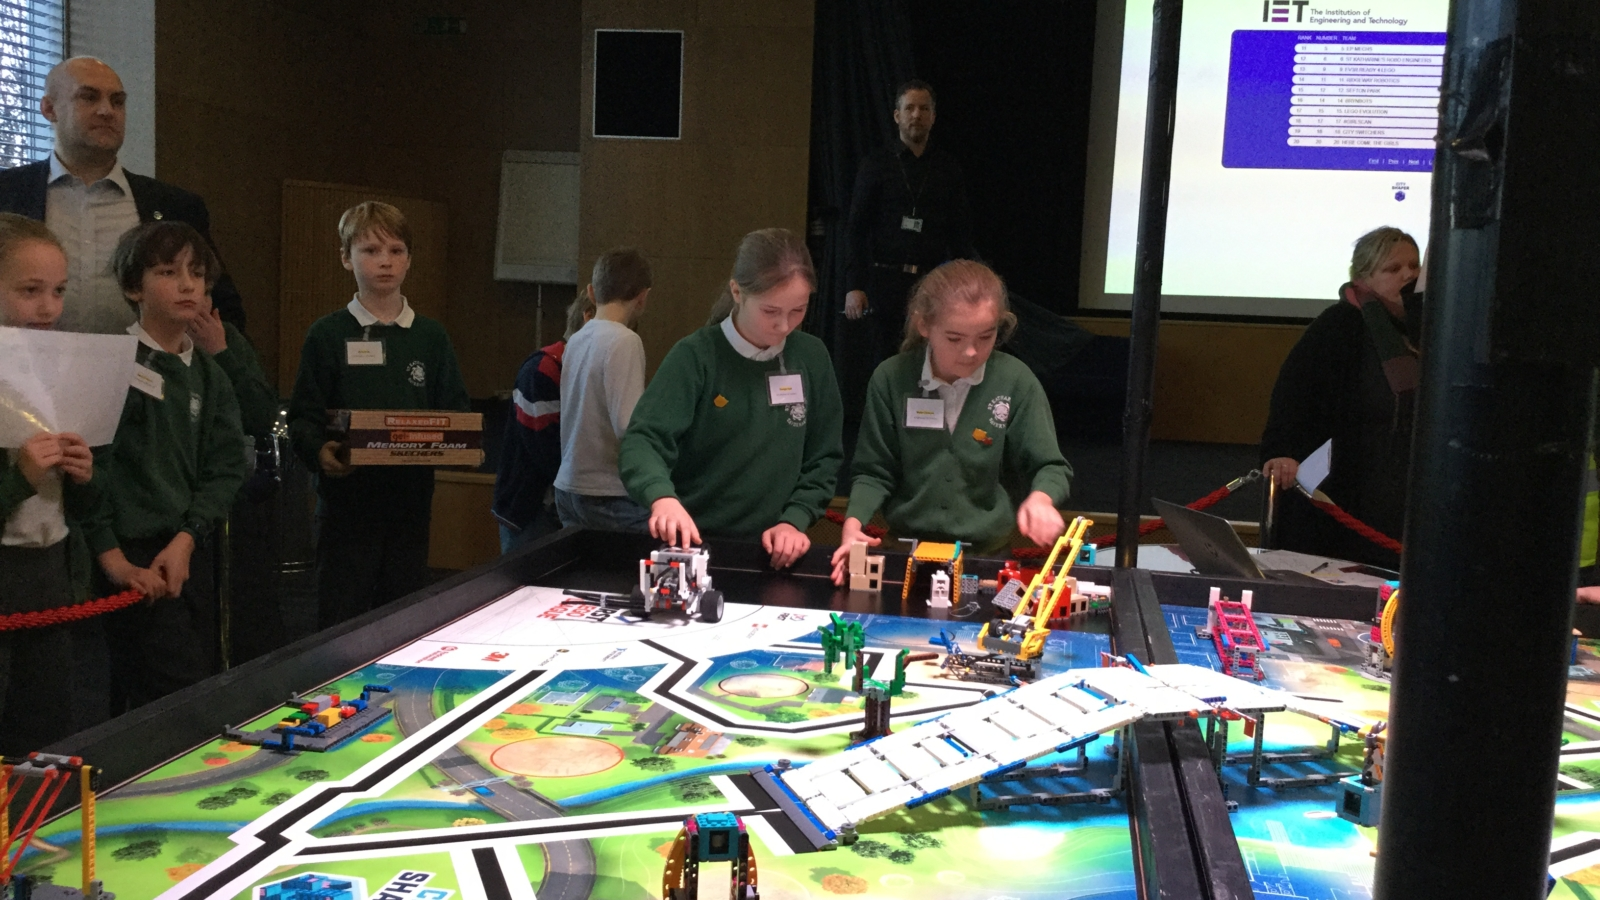 First Lego League competition picture